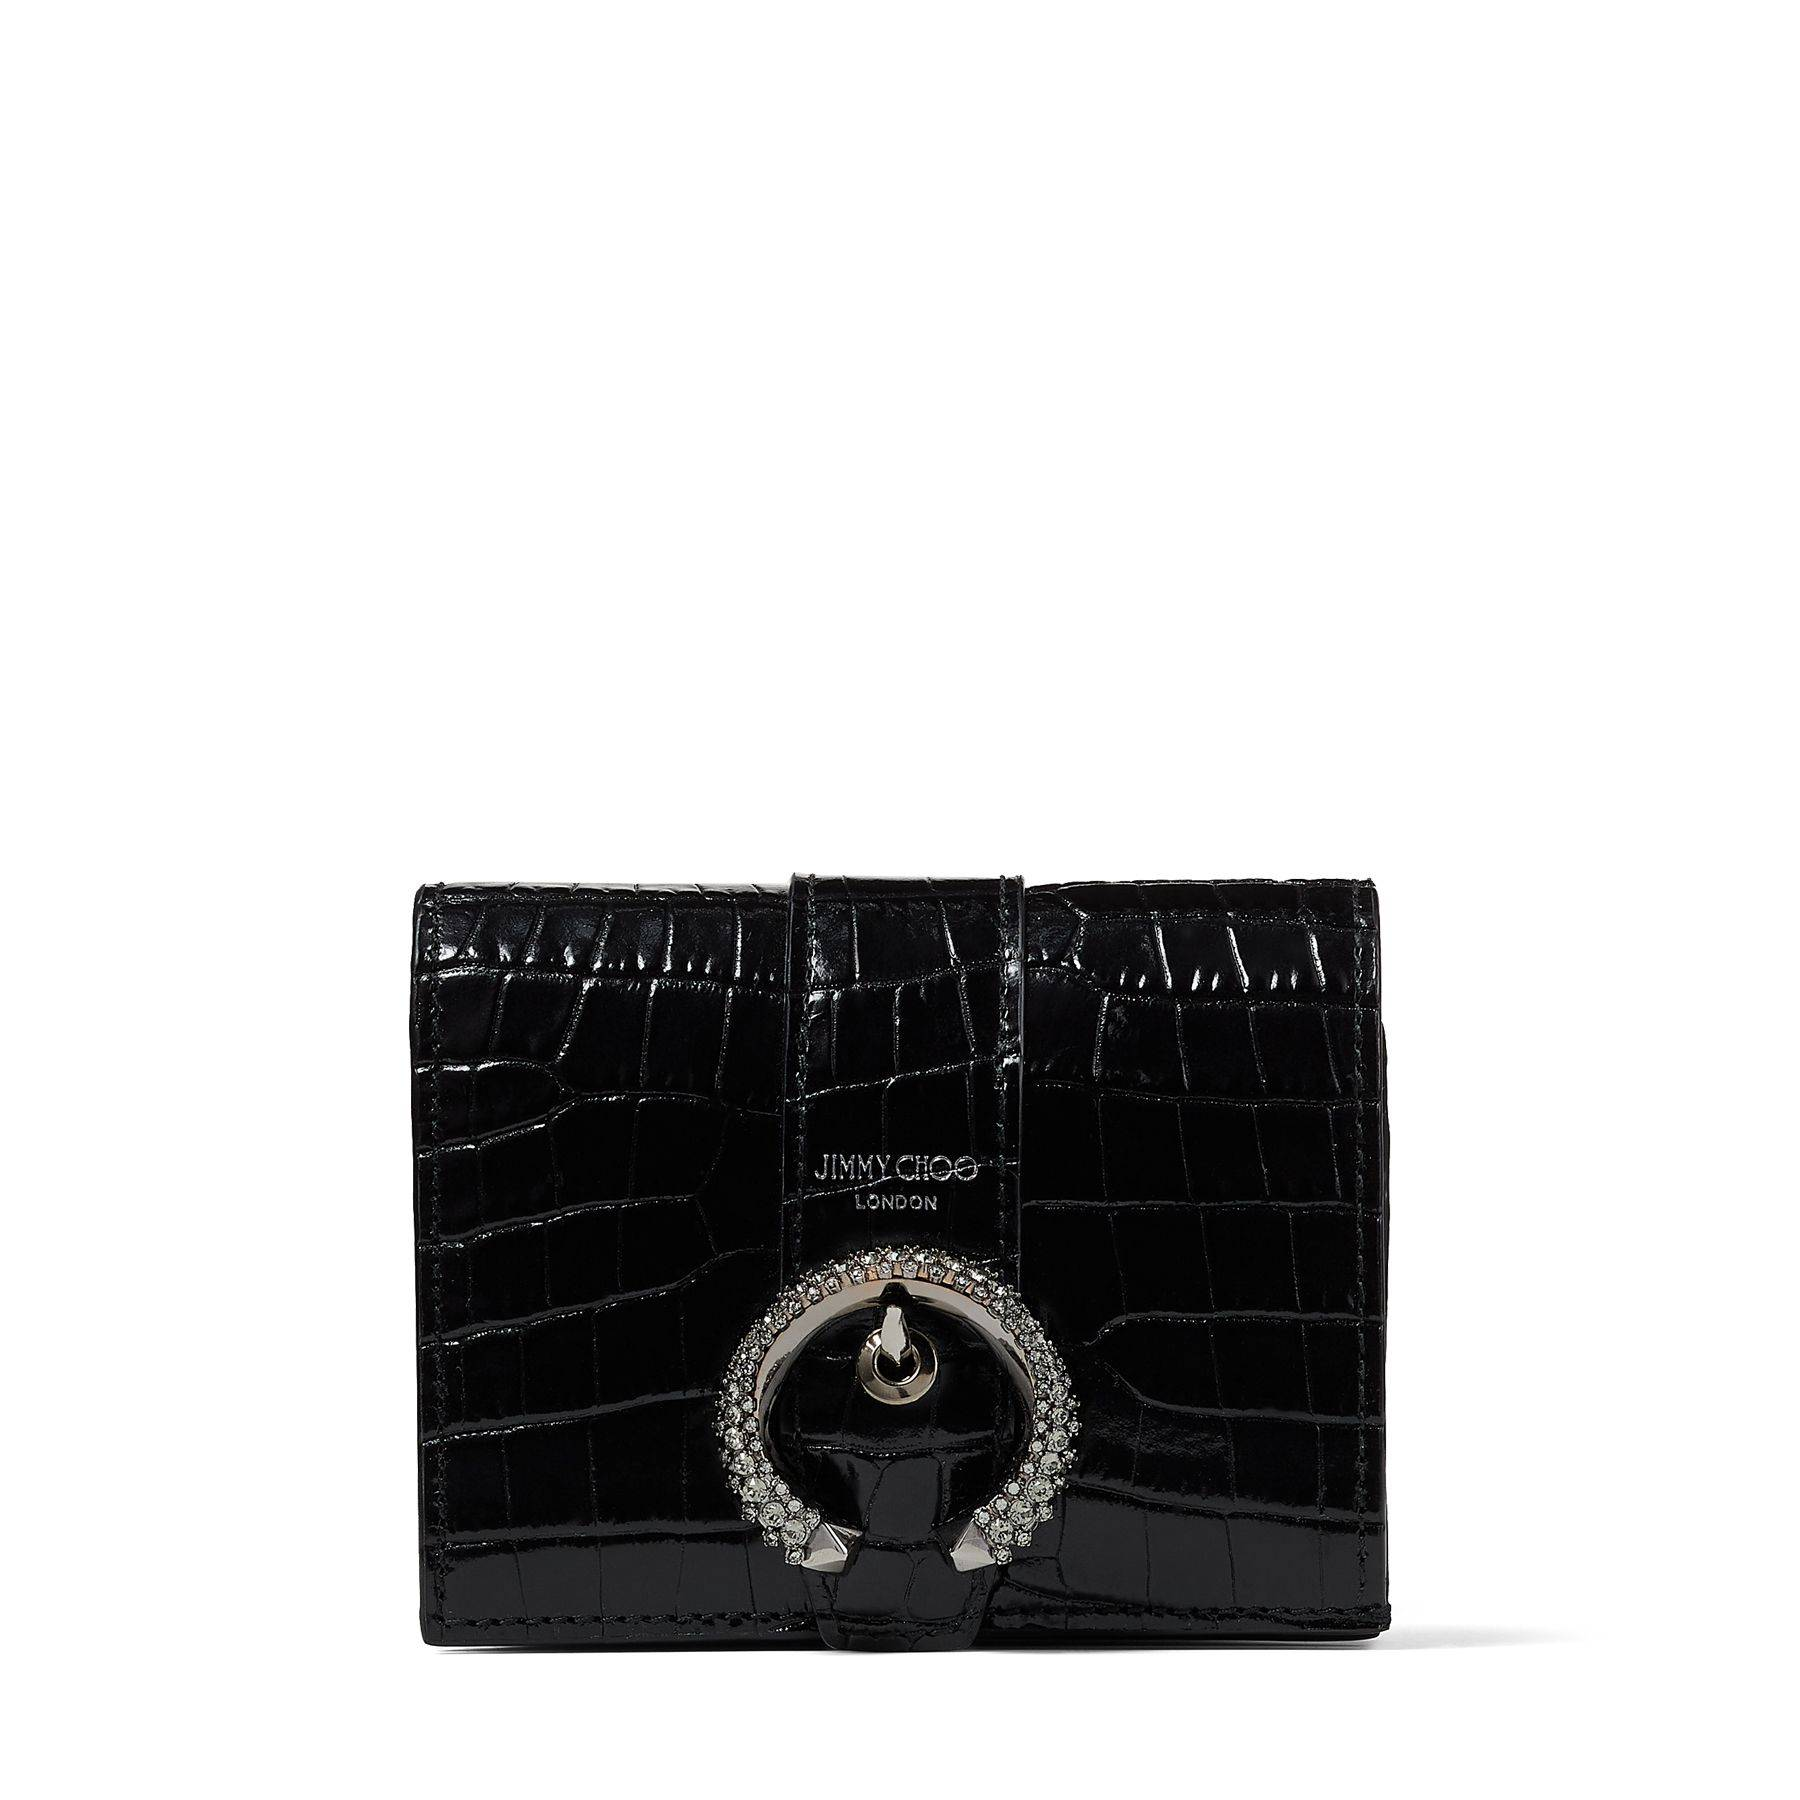 Jimmy Choo Hanne  - Black - Size: One Size